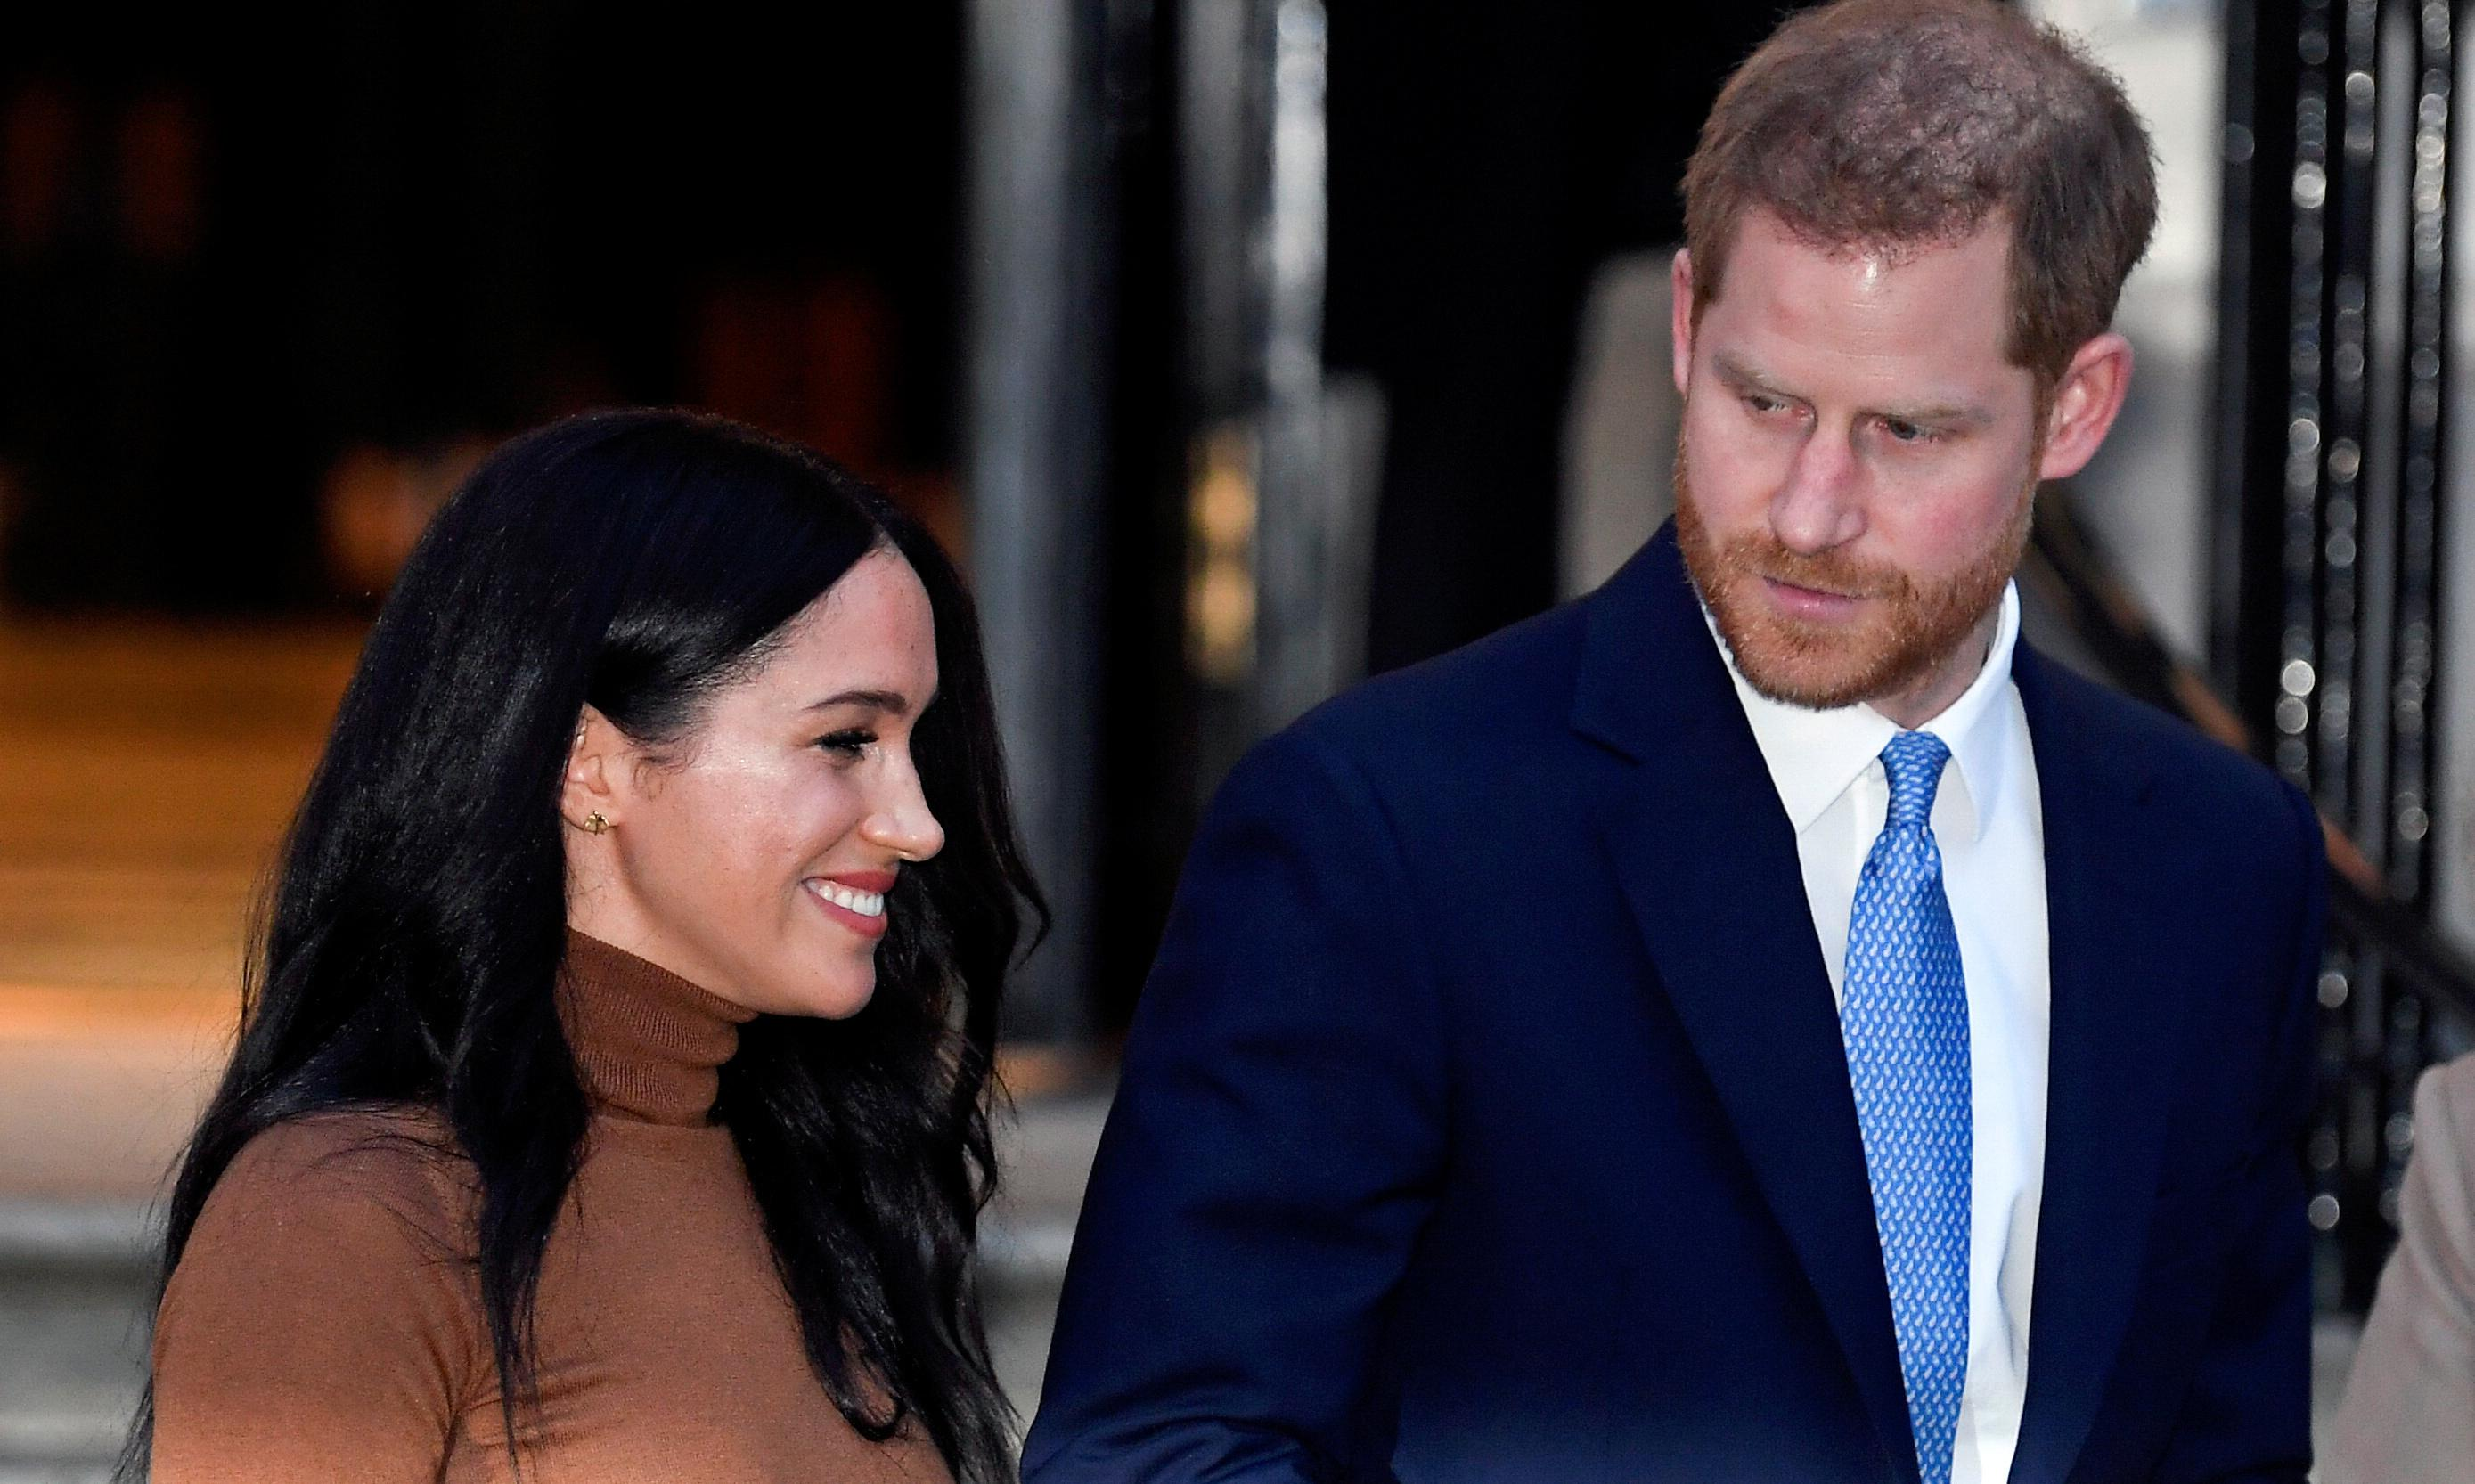 Harry and Meghan to split from royal family on 31 March